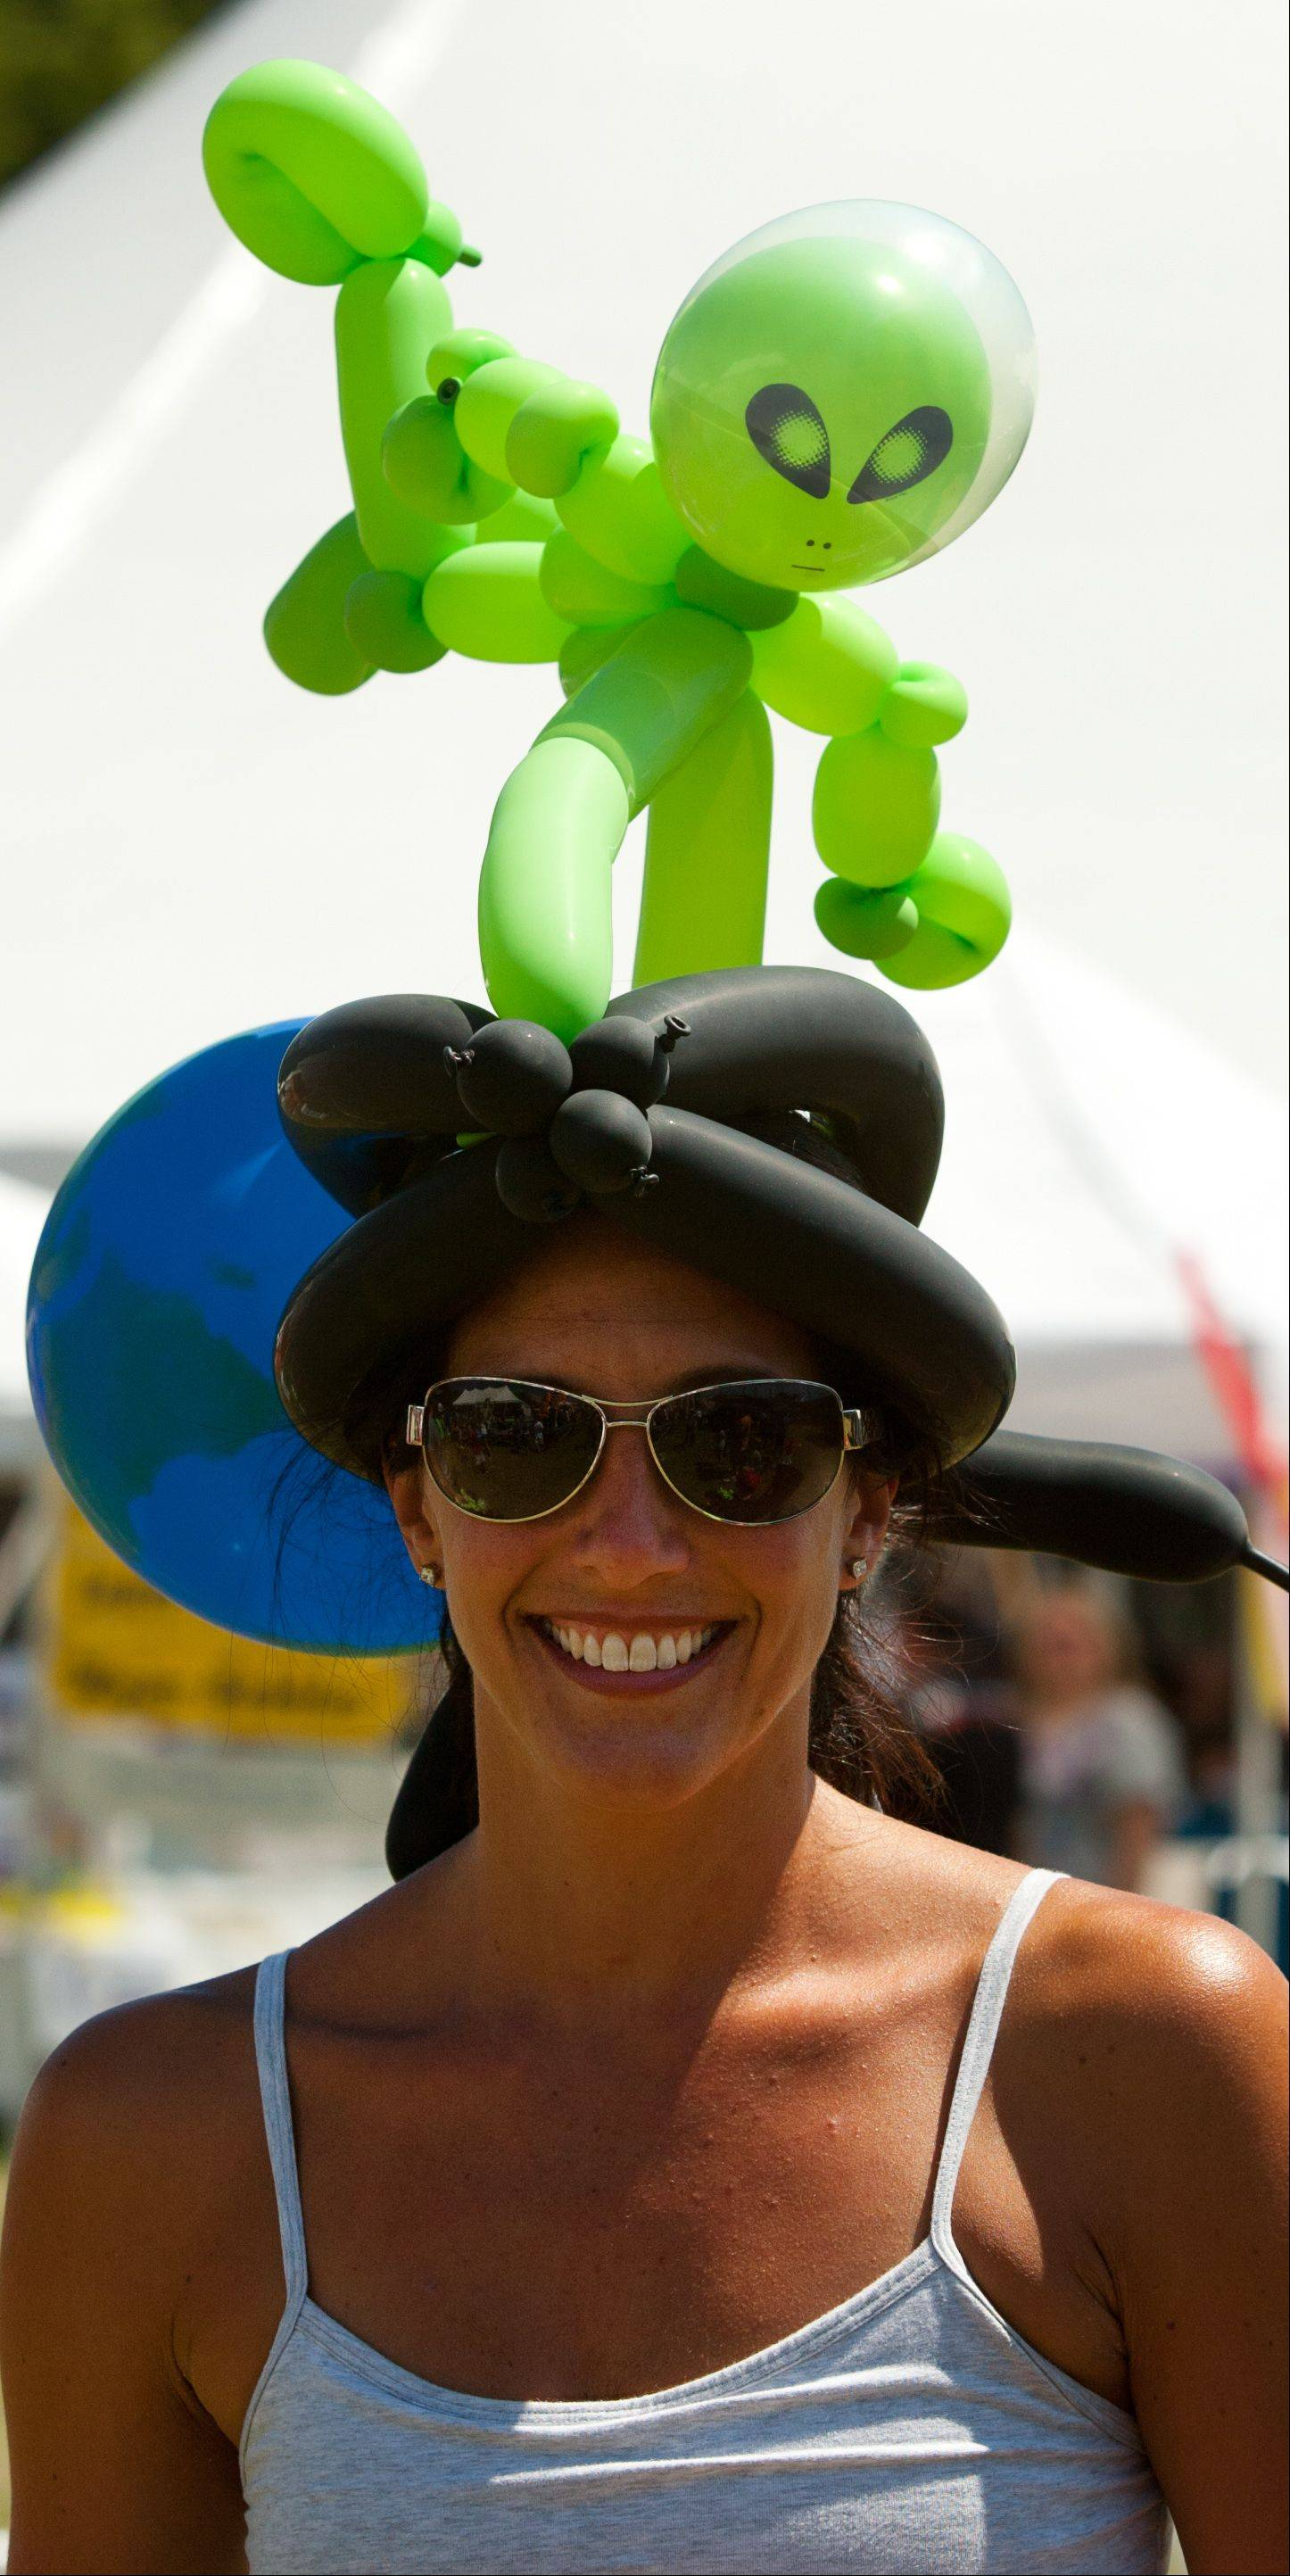 Natalie Brinkley of Itasca enjoys her alien balloon headdress during Itascafest on Saturday.